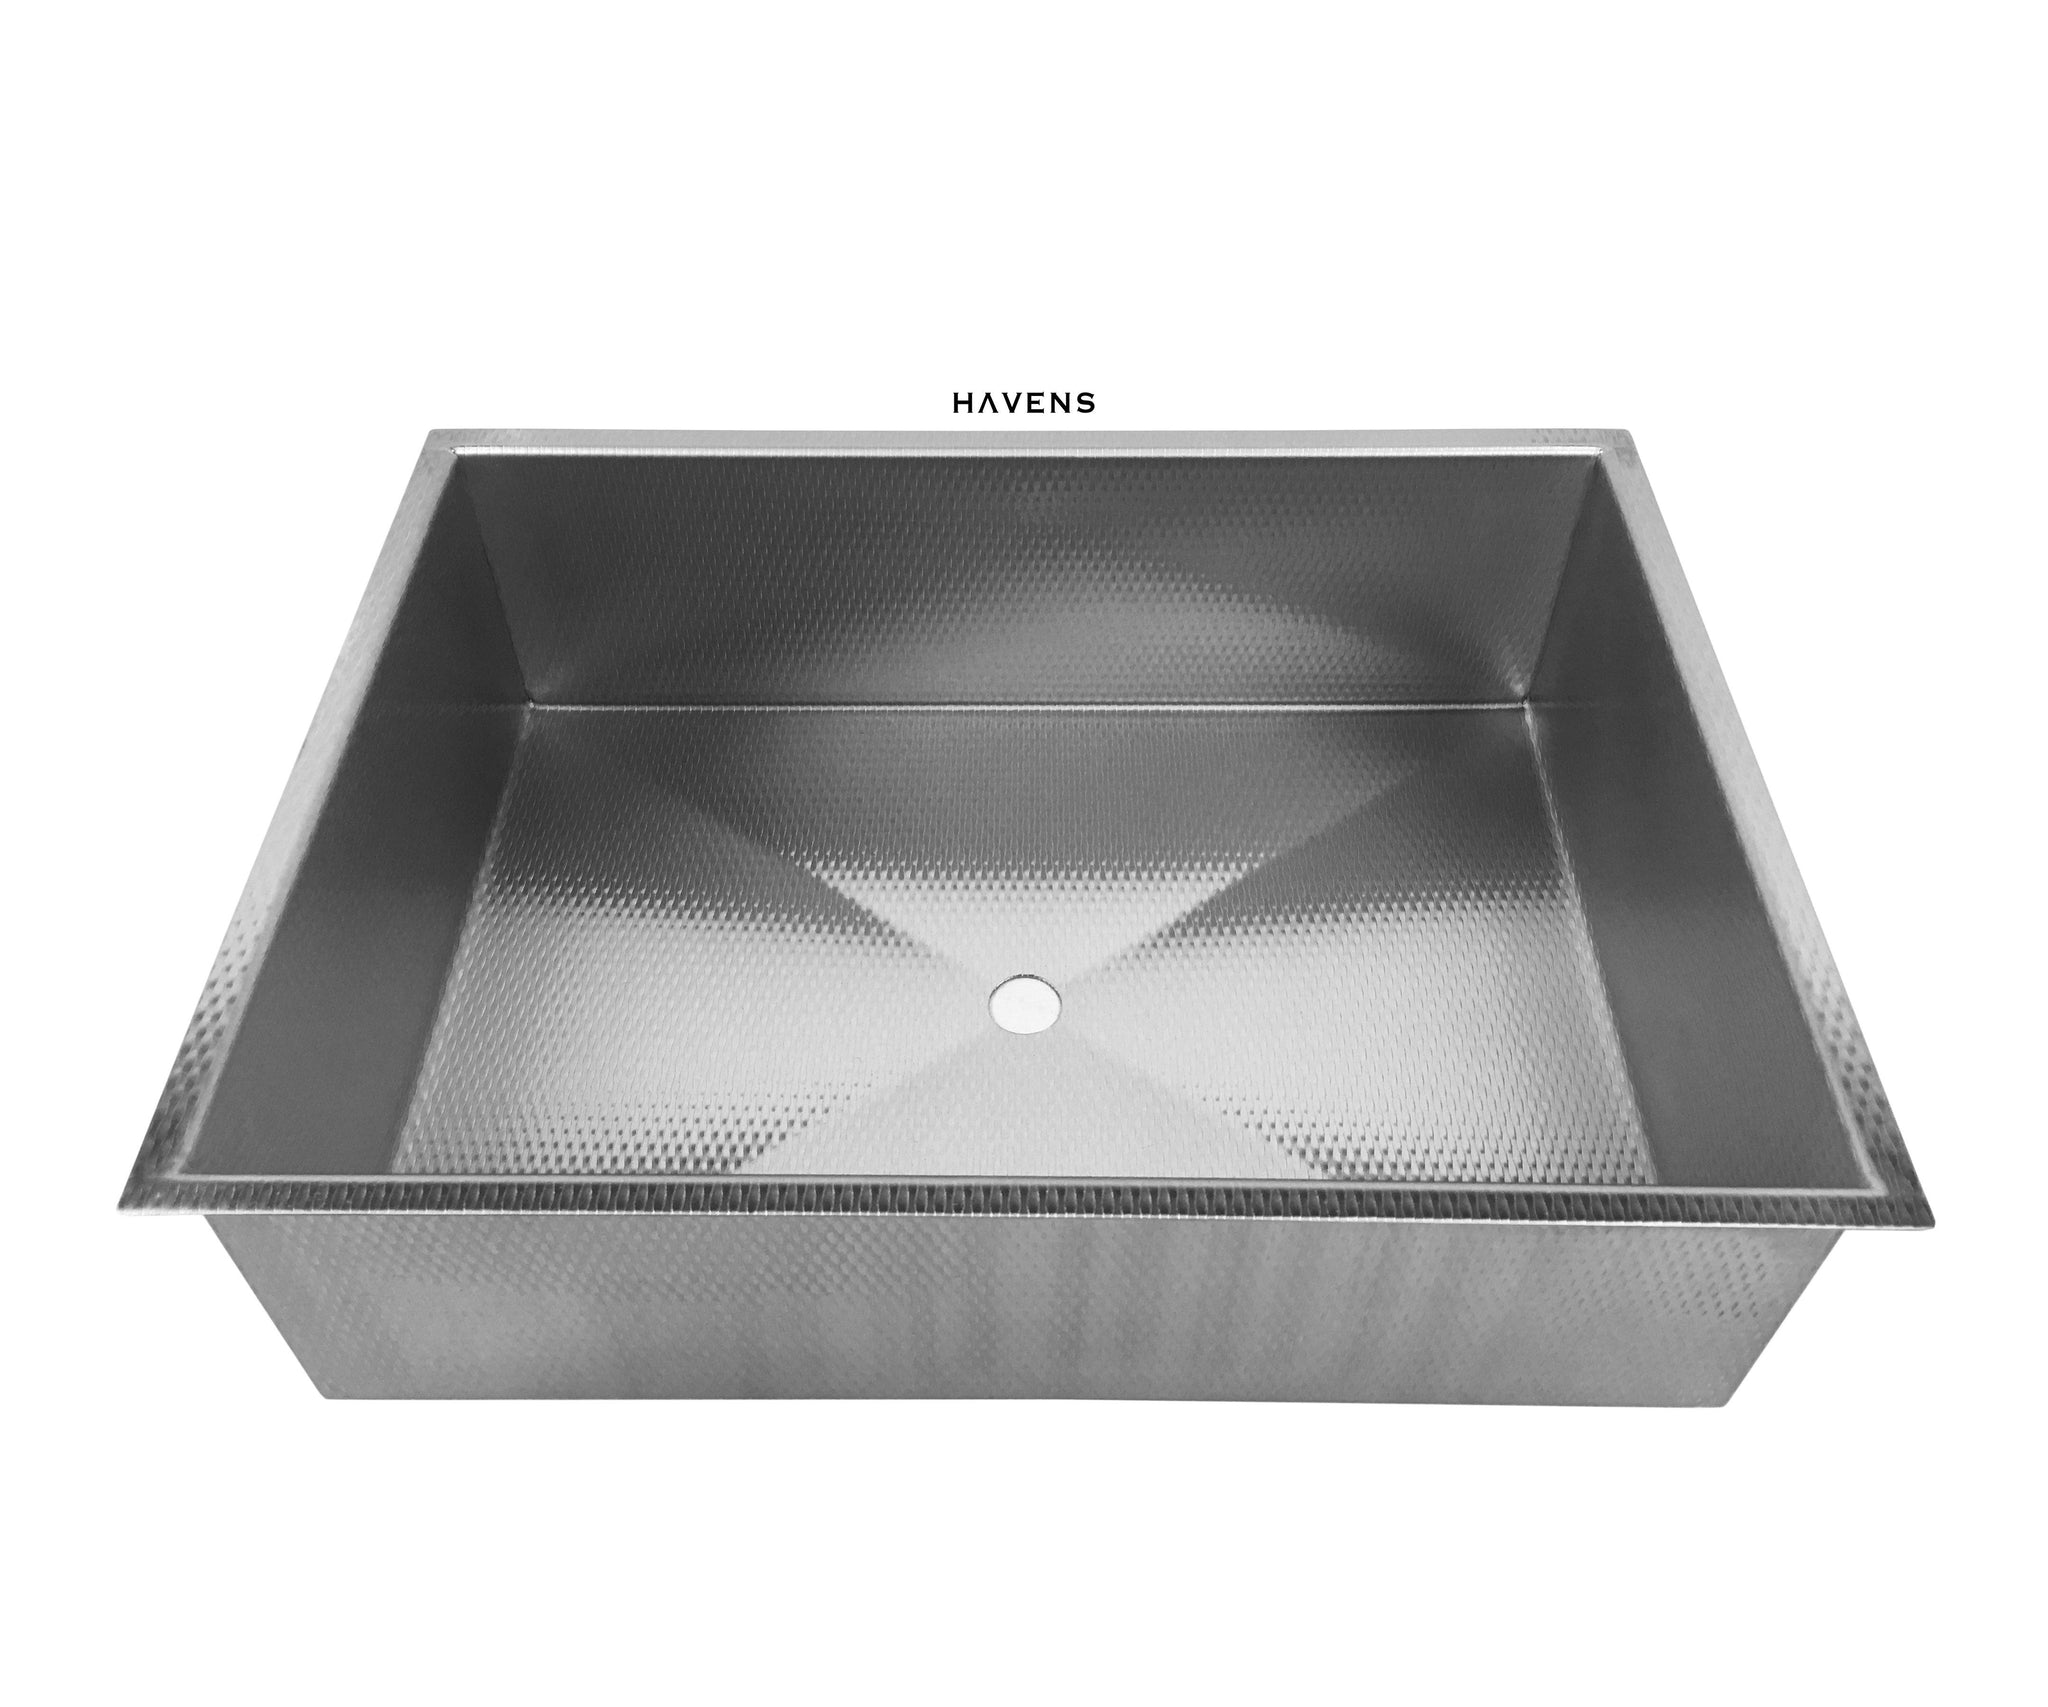 Advanced sink accessories havens metal accessory stainless steel sink drop in bowl workwithnaturefo